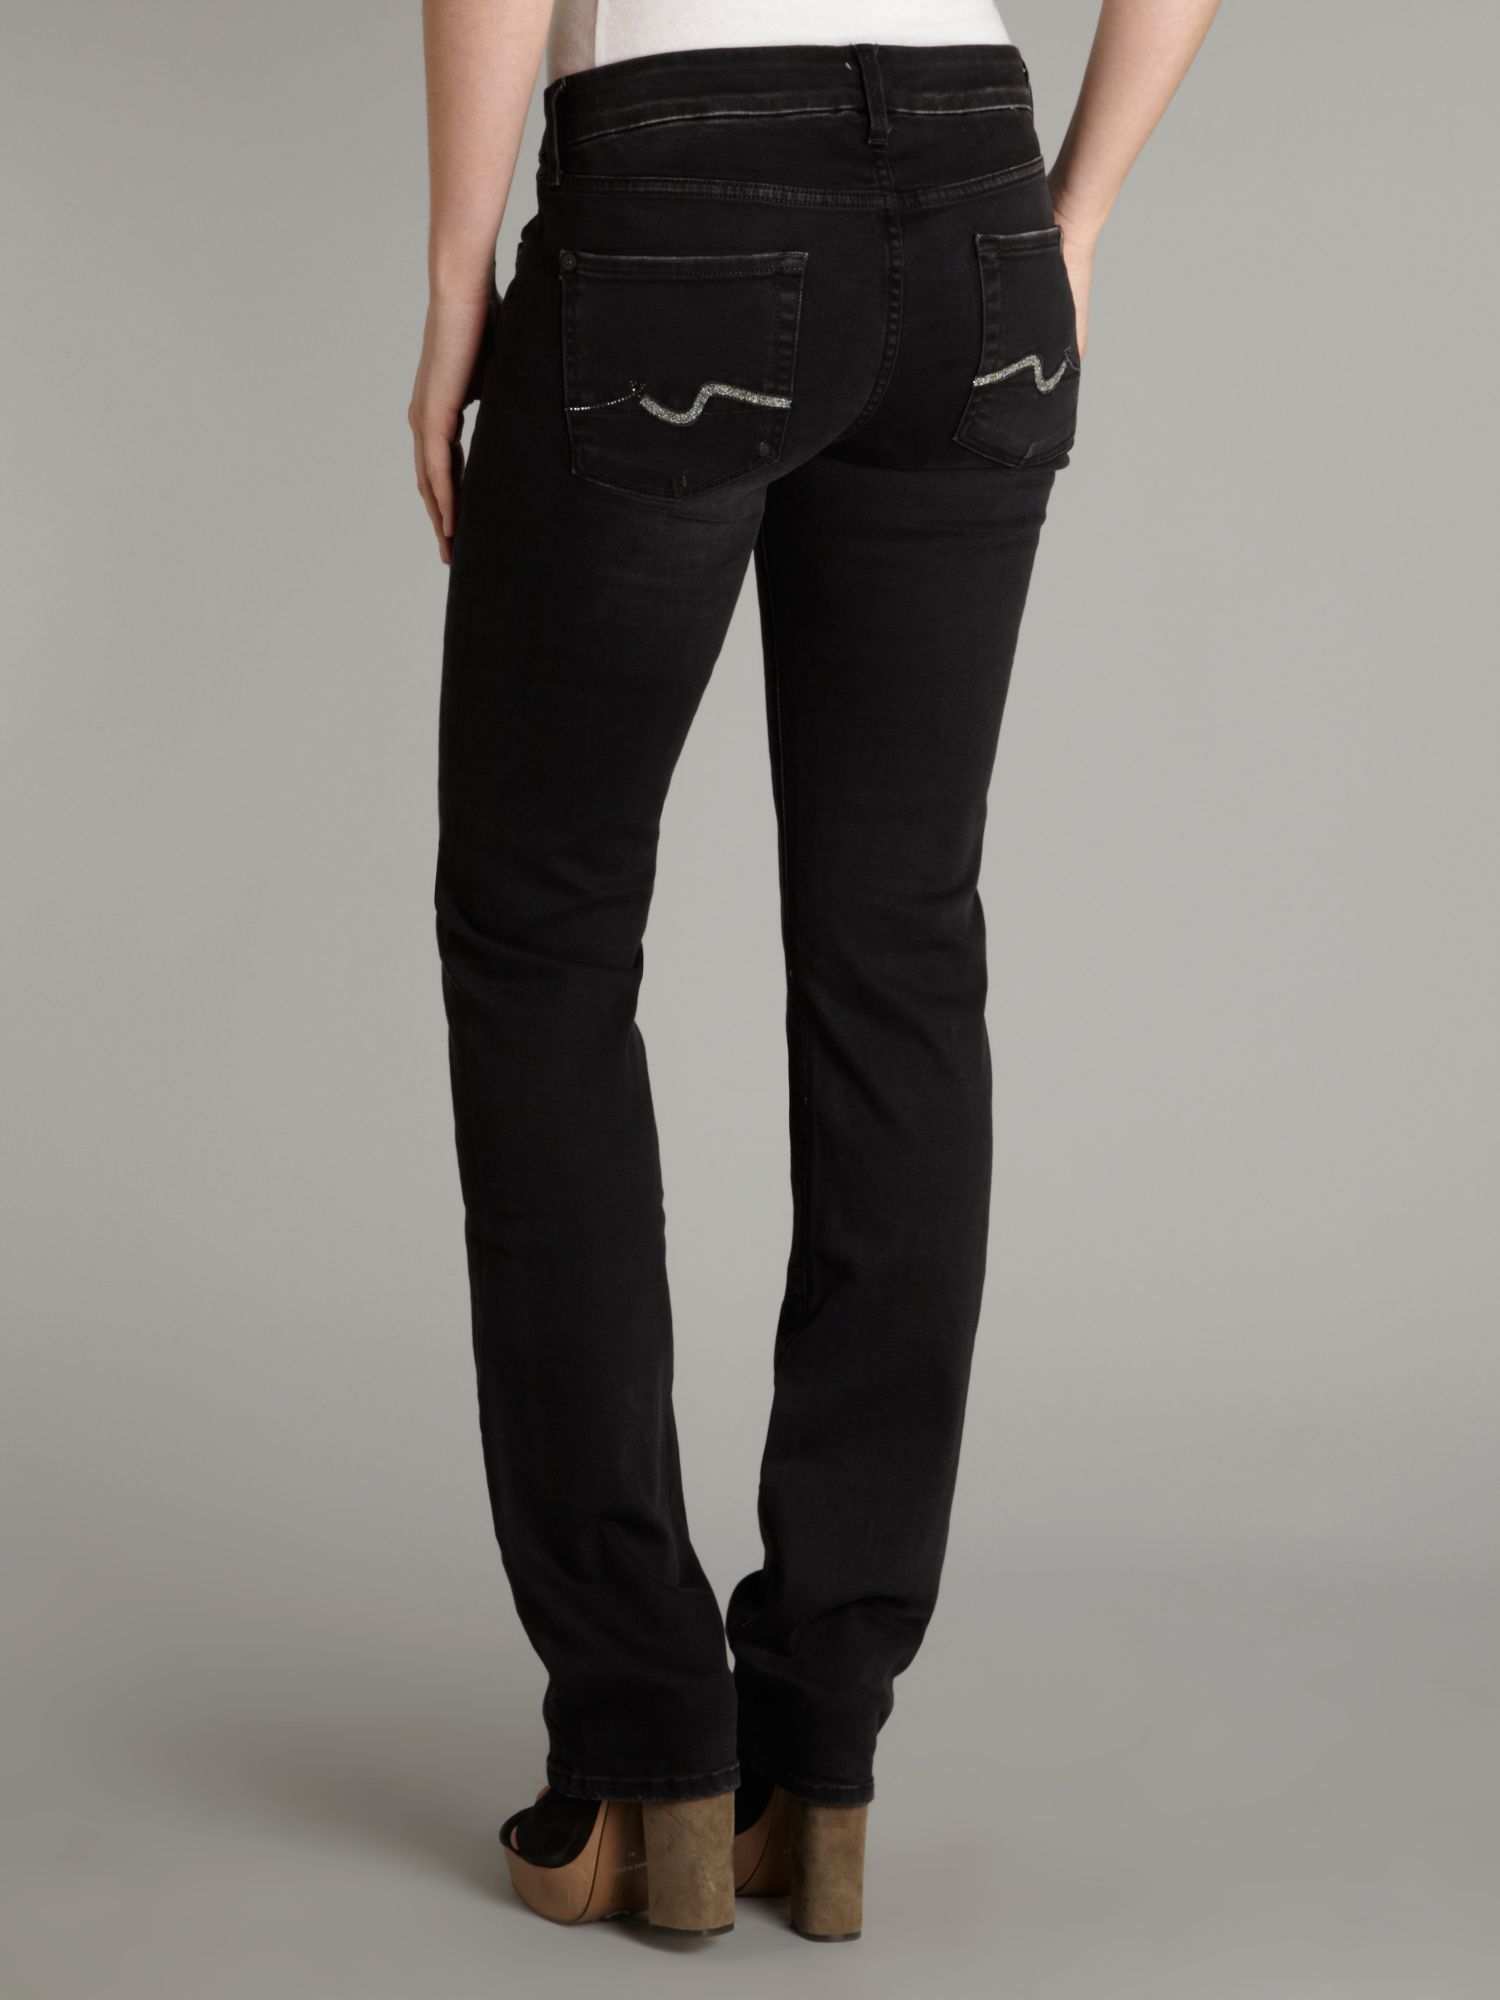 7 for all mankind Kimmie Straight Leg Jeans in Black | Lyst